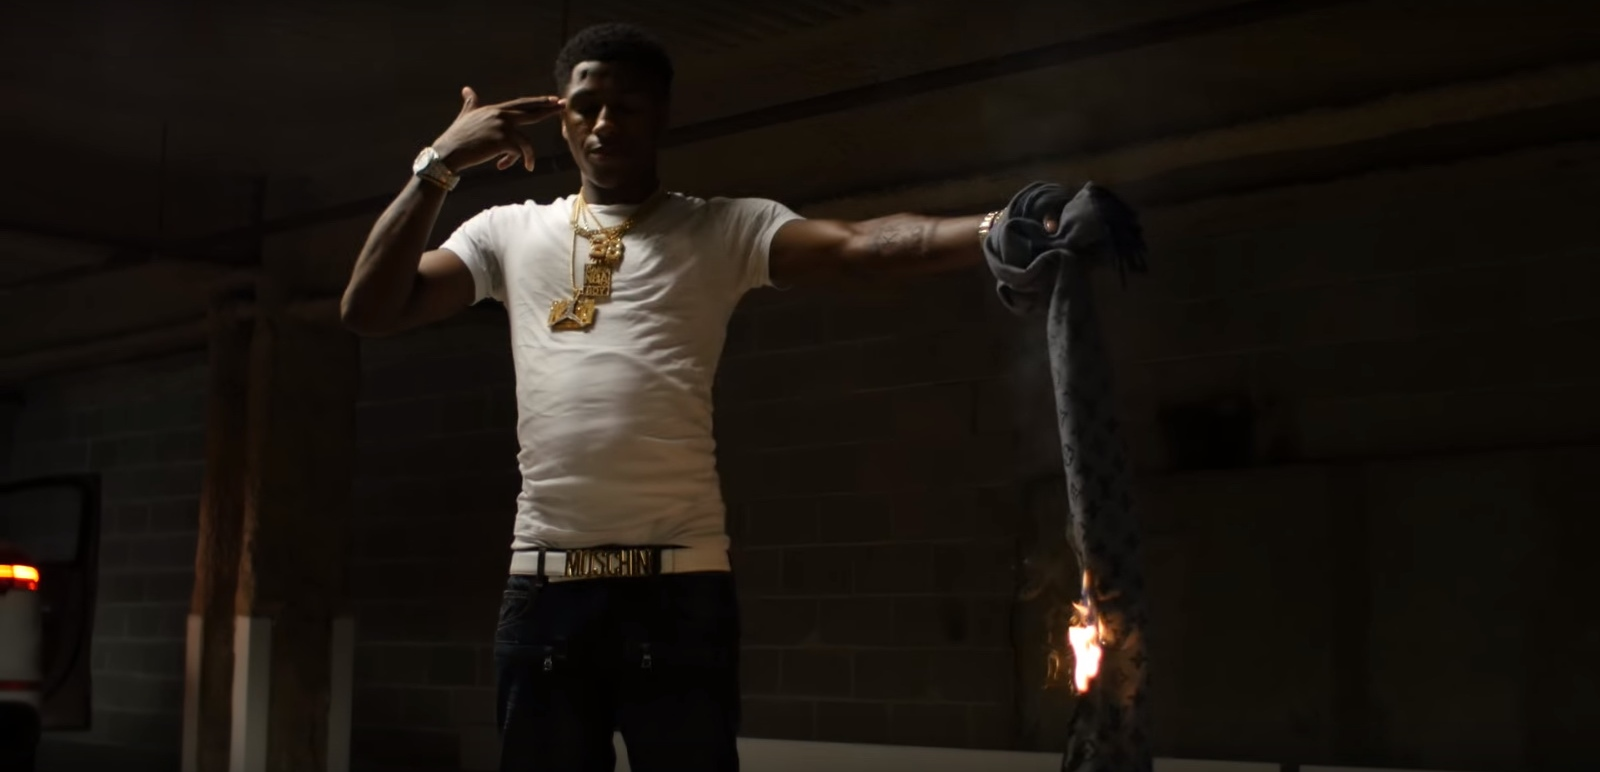 Moschino Belt and Louis Vuitton Men's Scarf – YoungBoy Never Broke Again – Graffiti (2017) Official Music Video Product Placement